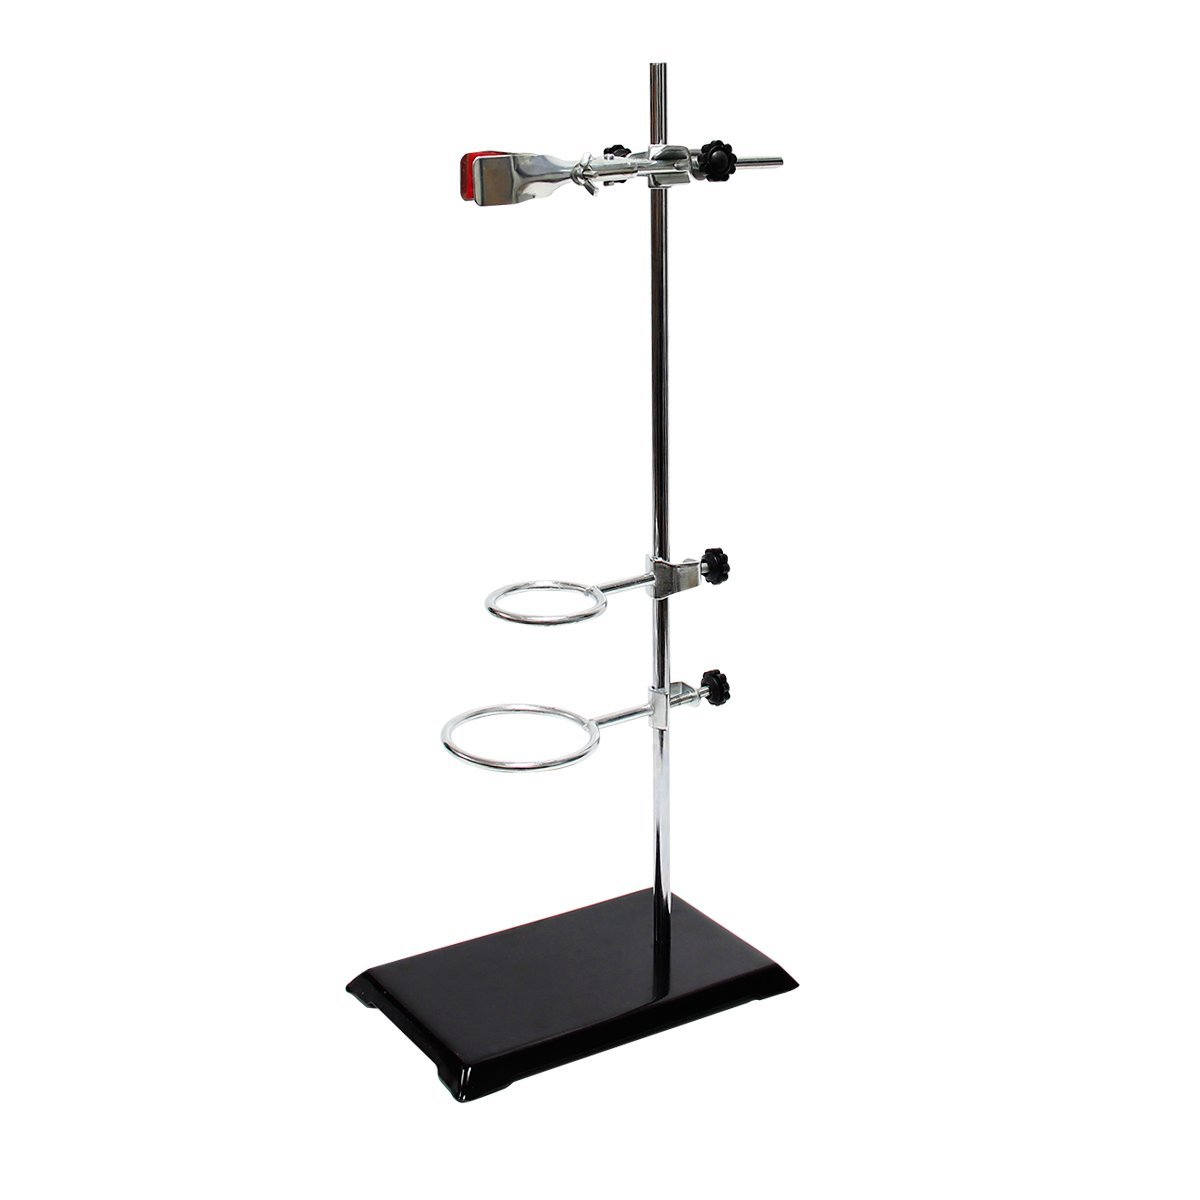 Wisamic Laboratory Grade Metalware Set - with Support Stand (8.3''x5.5''), 2 Retort Rings (Dia. 2.2''/2.6''), Rod (Length 19.7'') and Burette Clamp